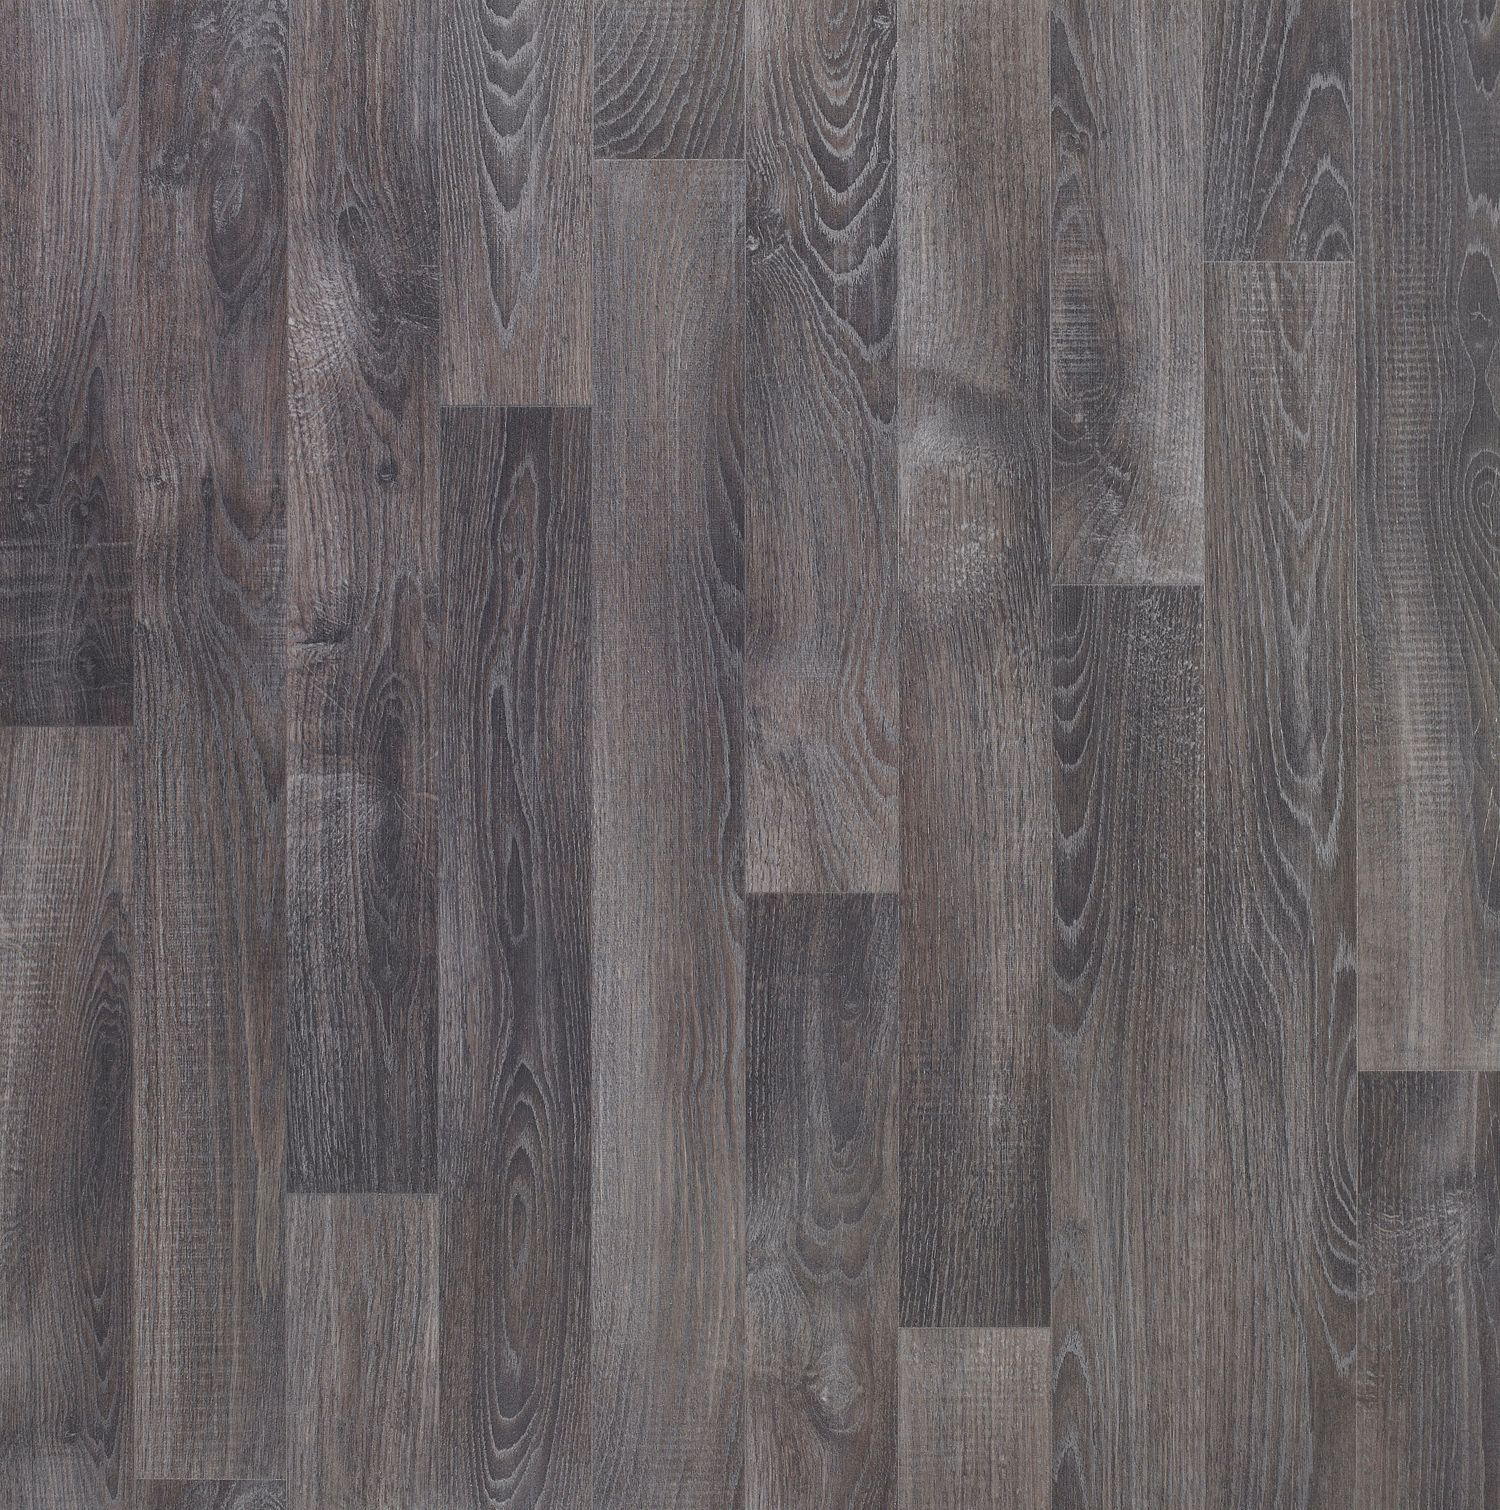 Dark Grey Oak Effect Vinyl Flooring 4 M2